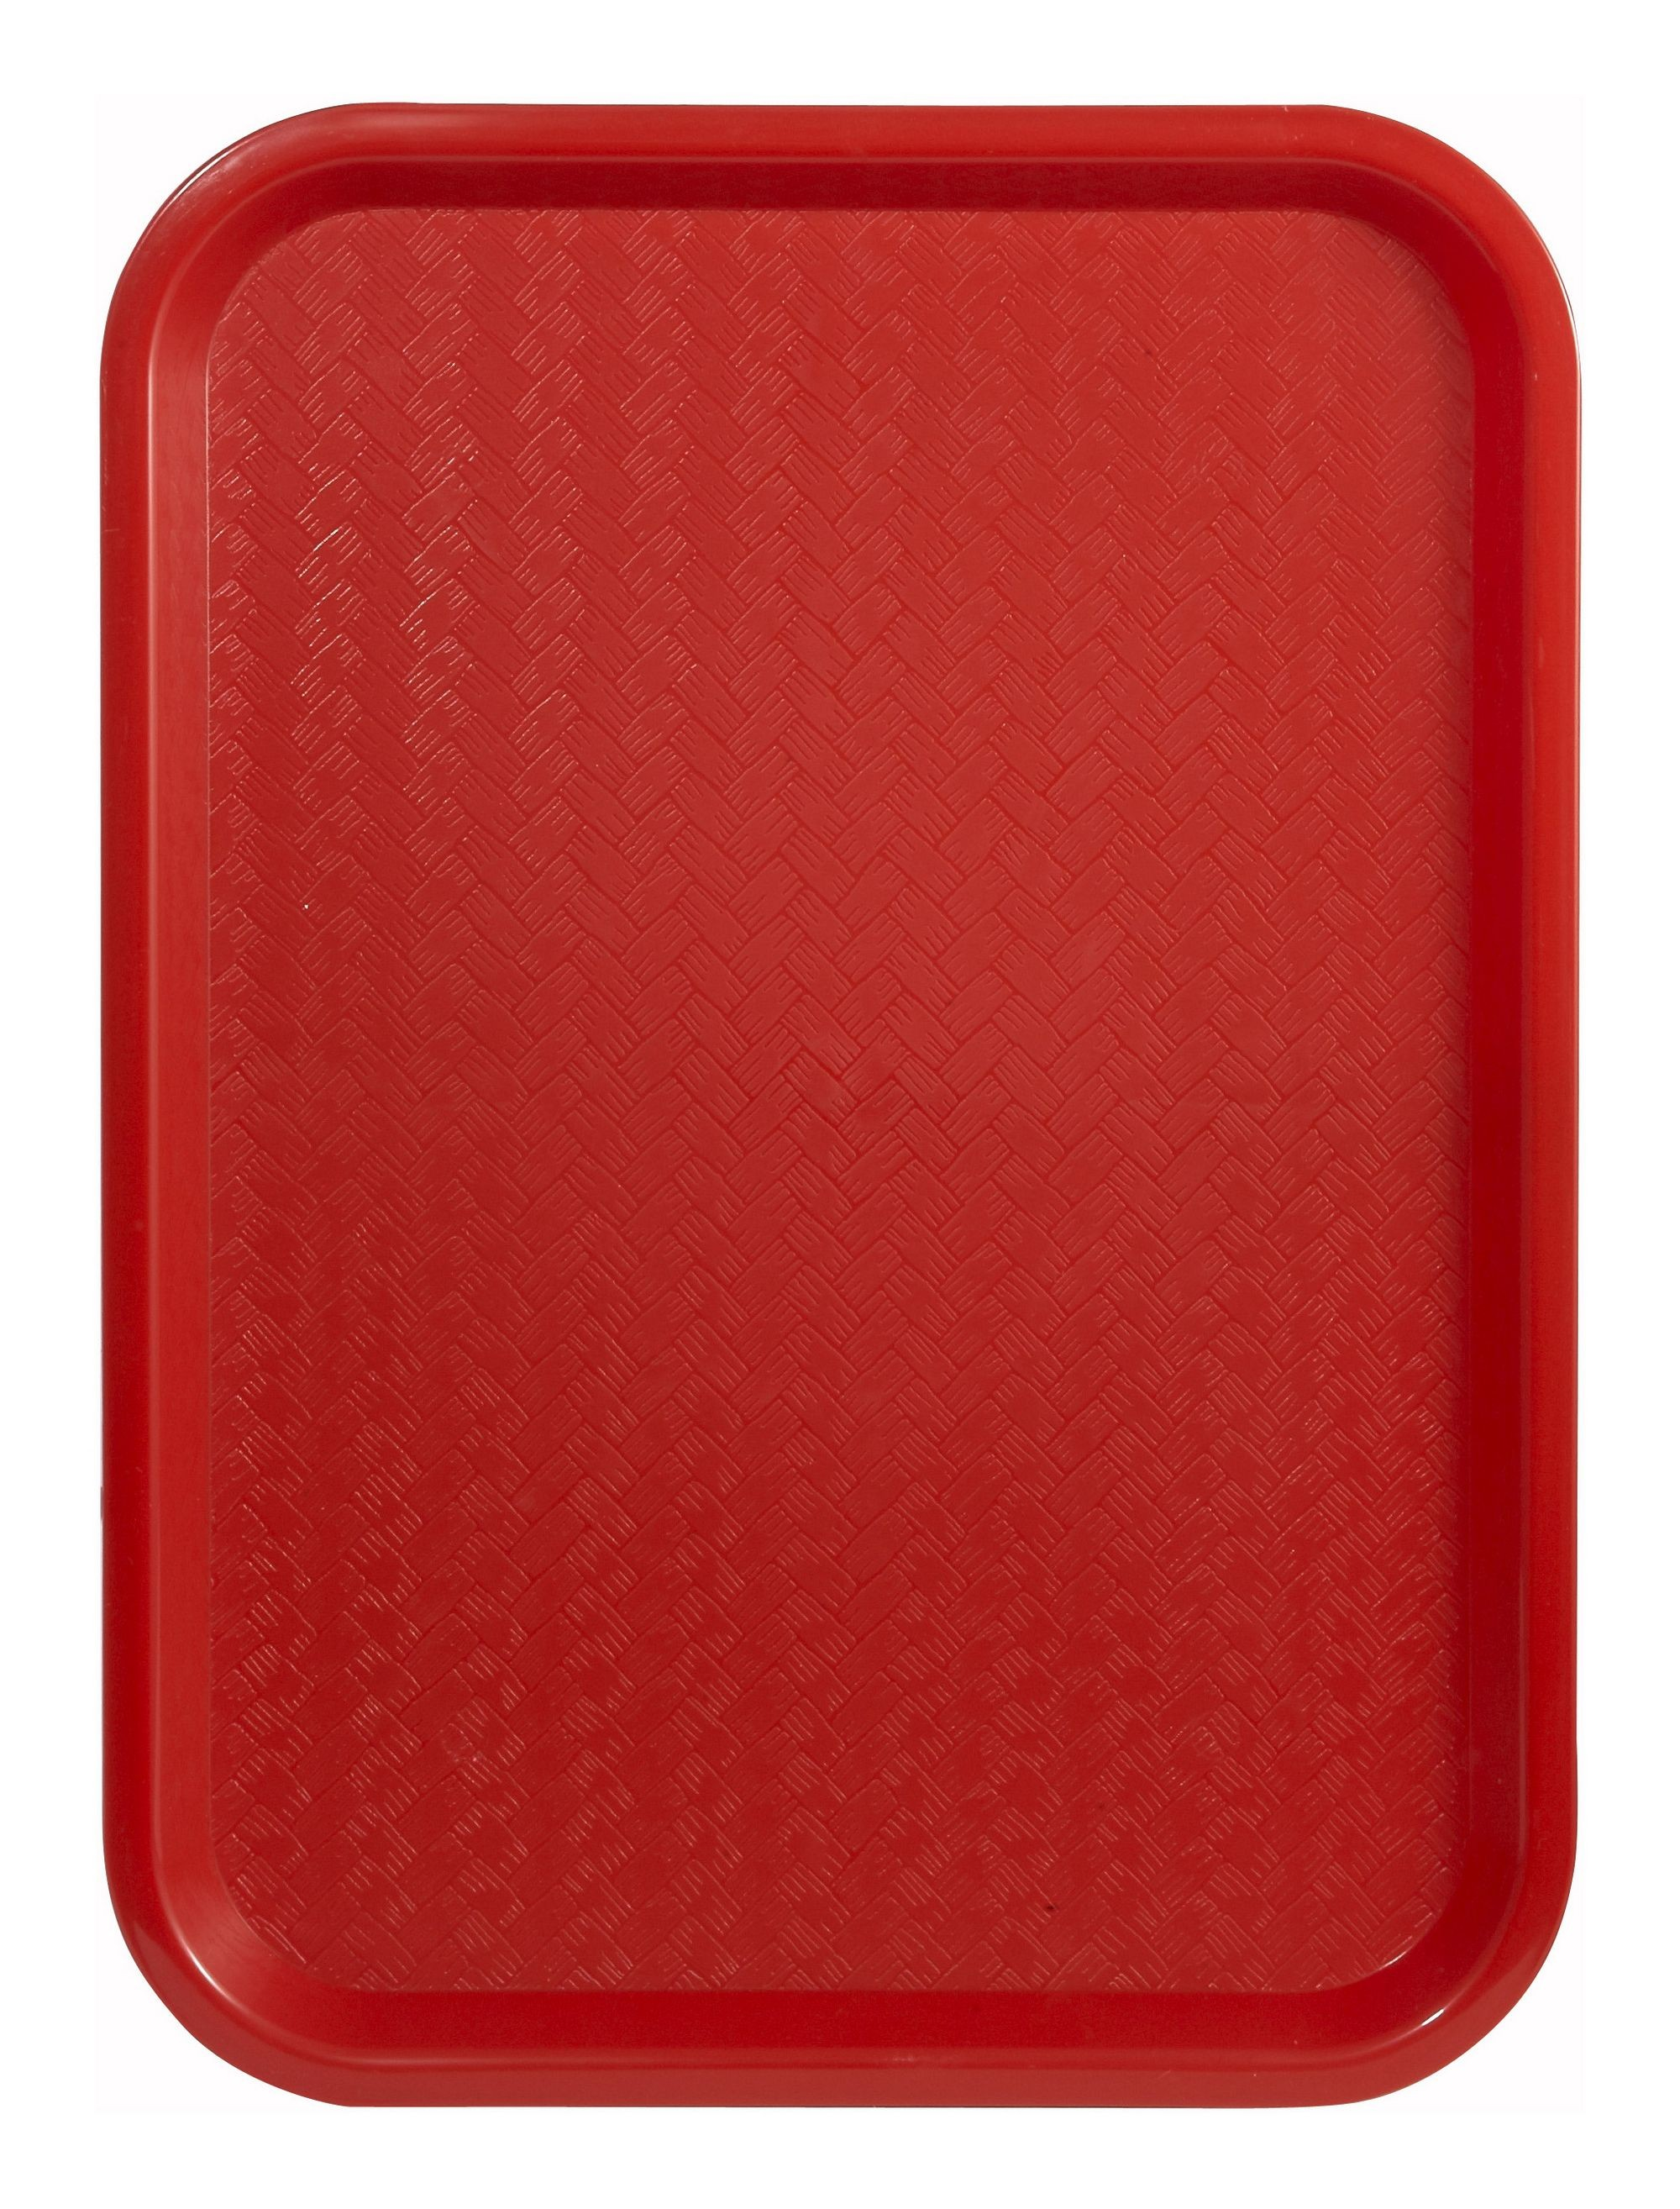 Premium Plastic Fast Food Tray 10 x 14 (Red)